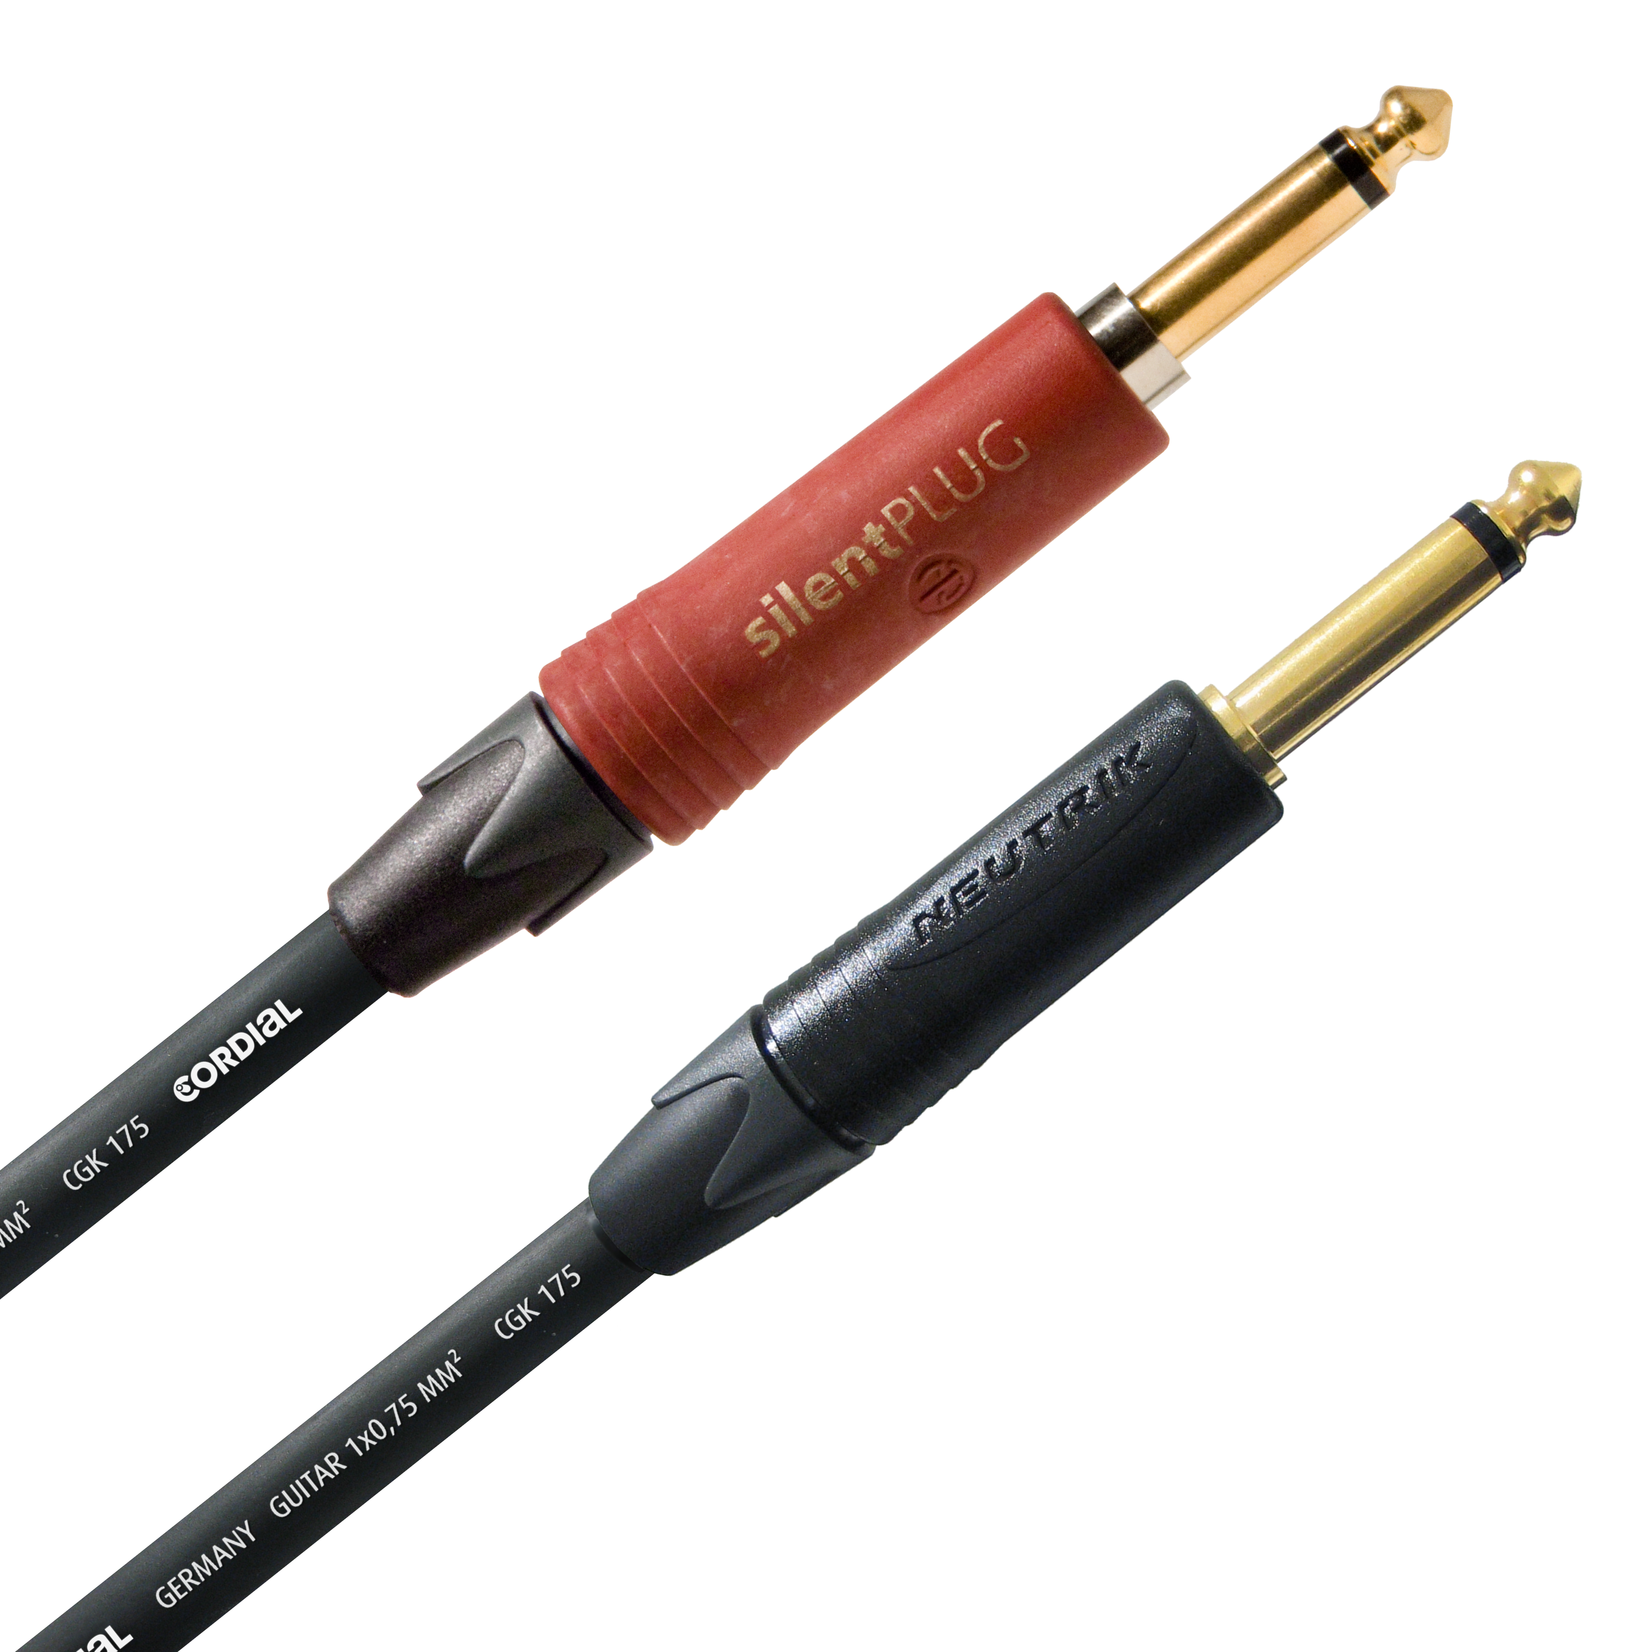 Cordial Cables Cordial 6m /~20ft Premium High-Copper German Instrument Cable, 1/4'' Neutrik Silent, CSI 6 PP-SILENT